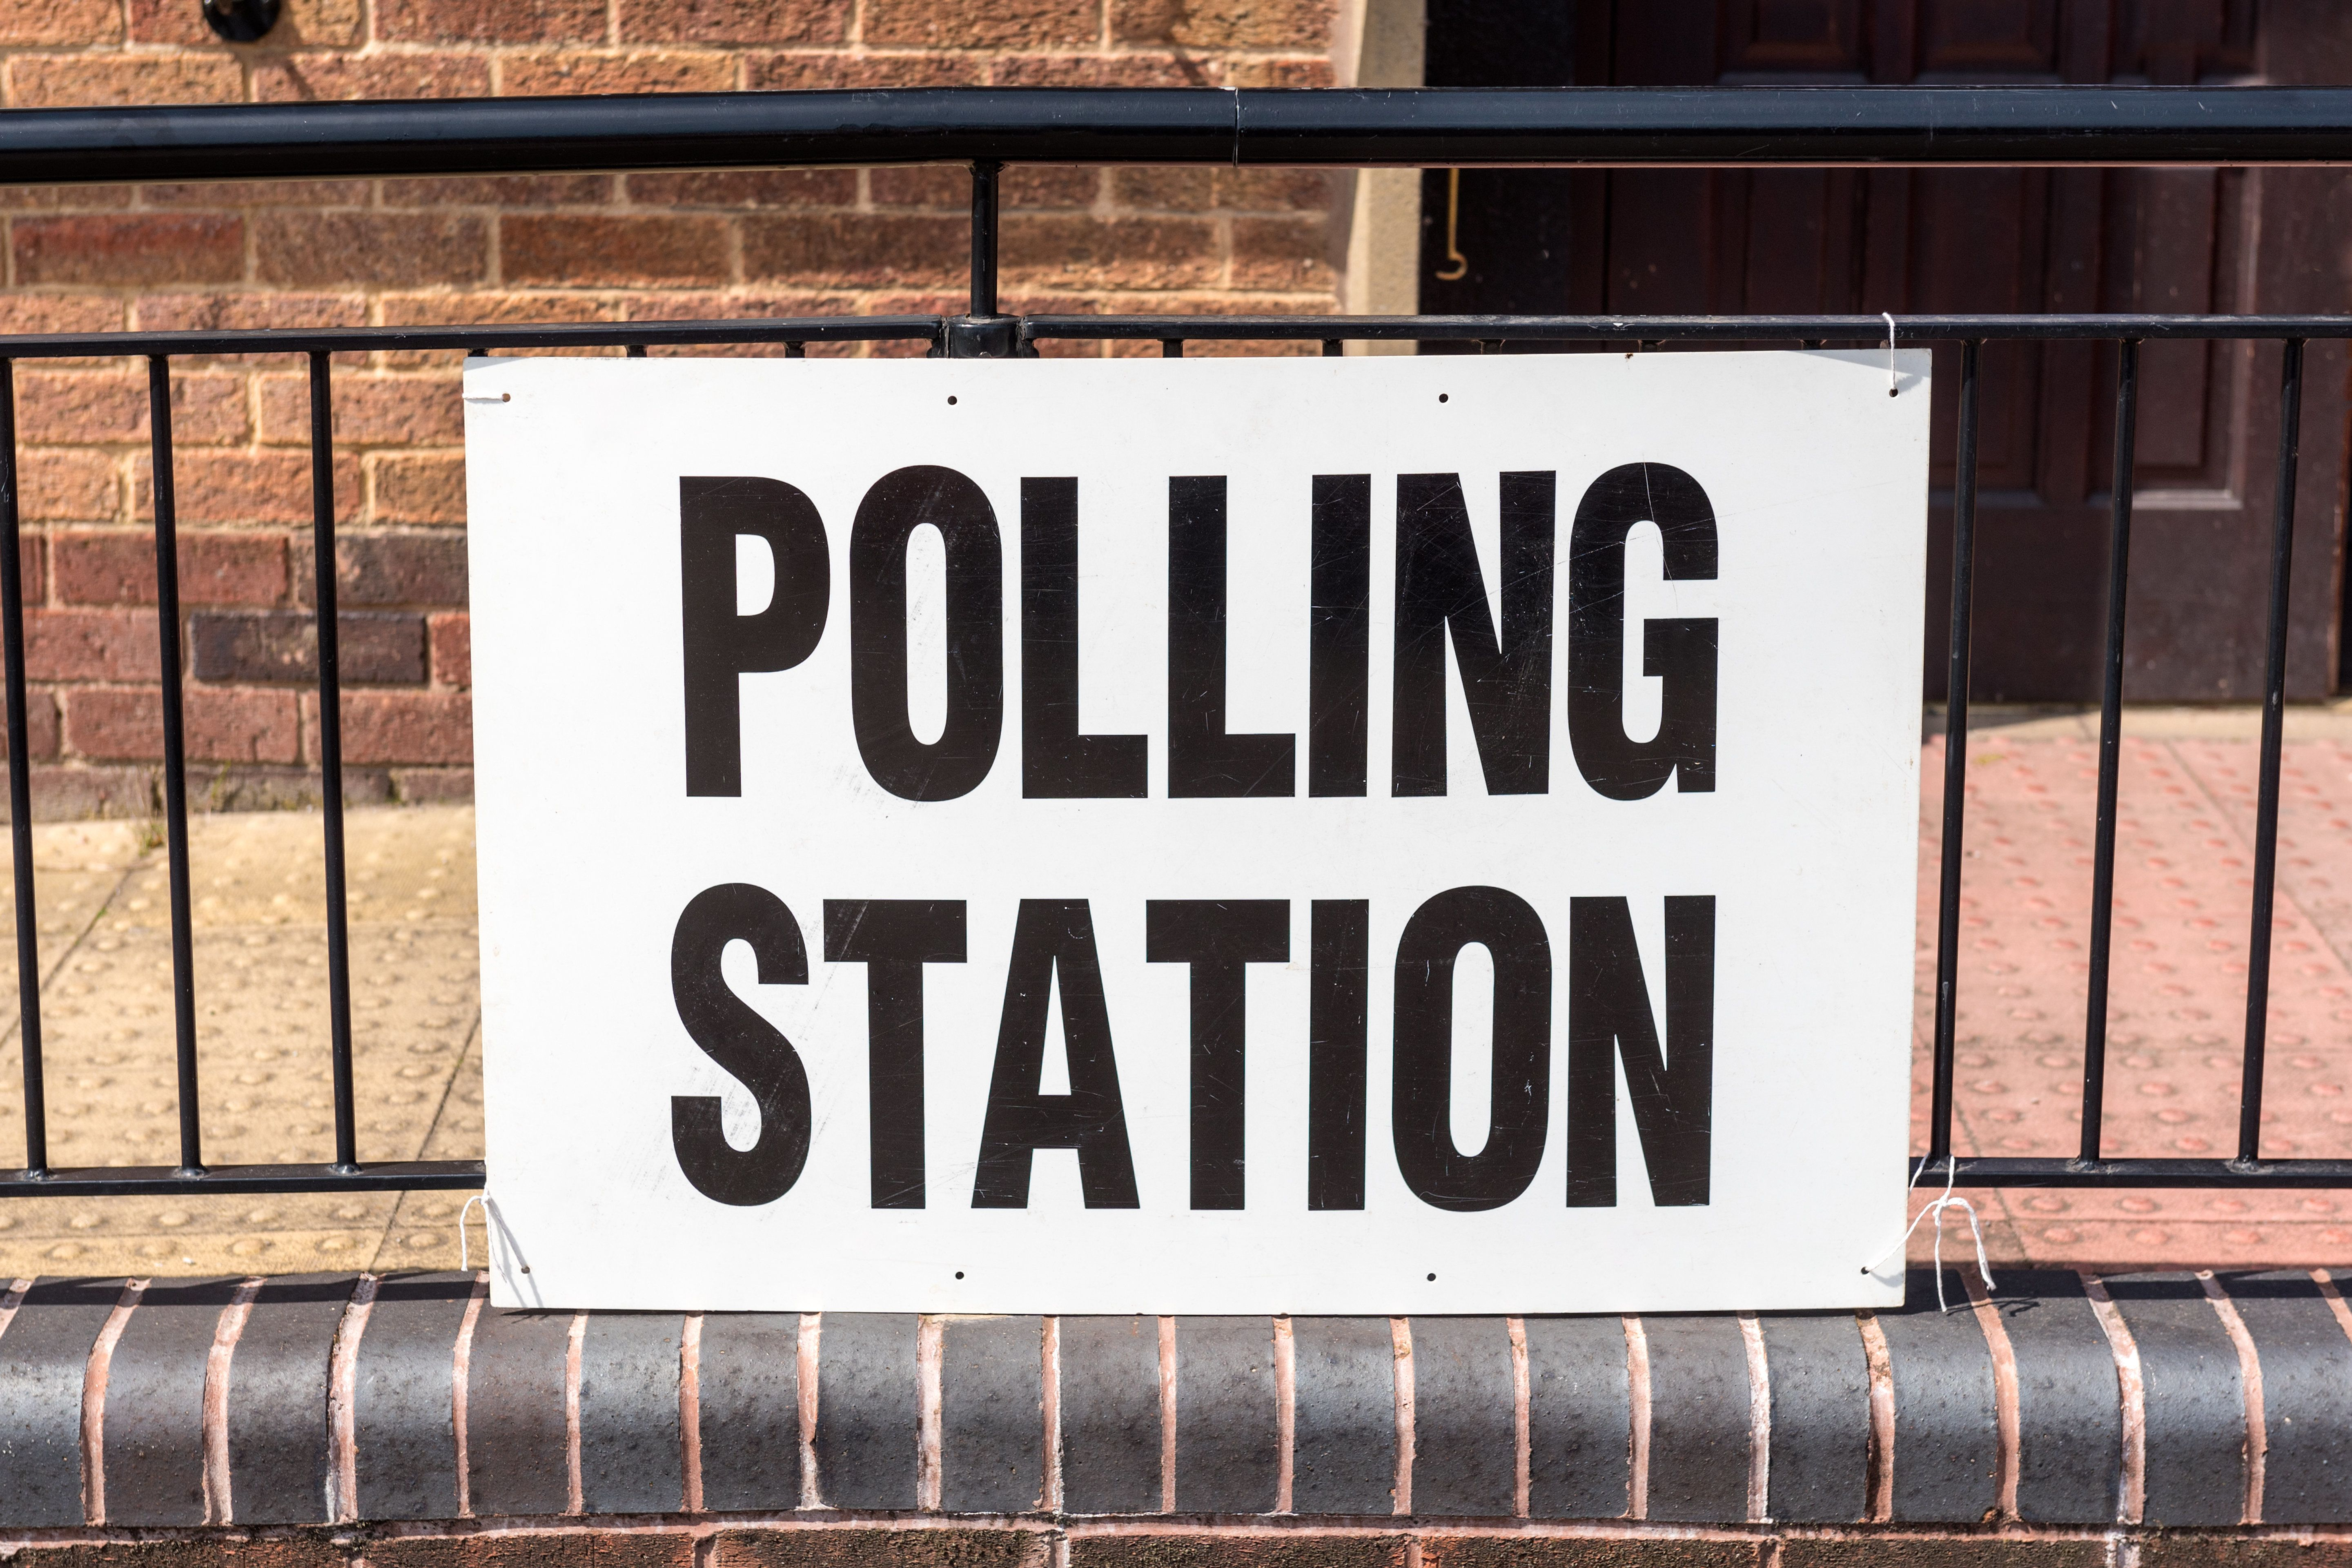 The Electoral Commission has raised 'troubling' claims of double voting in the General